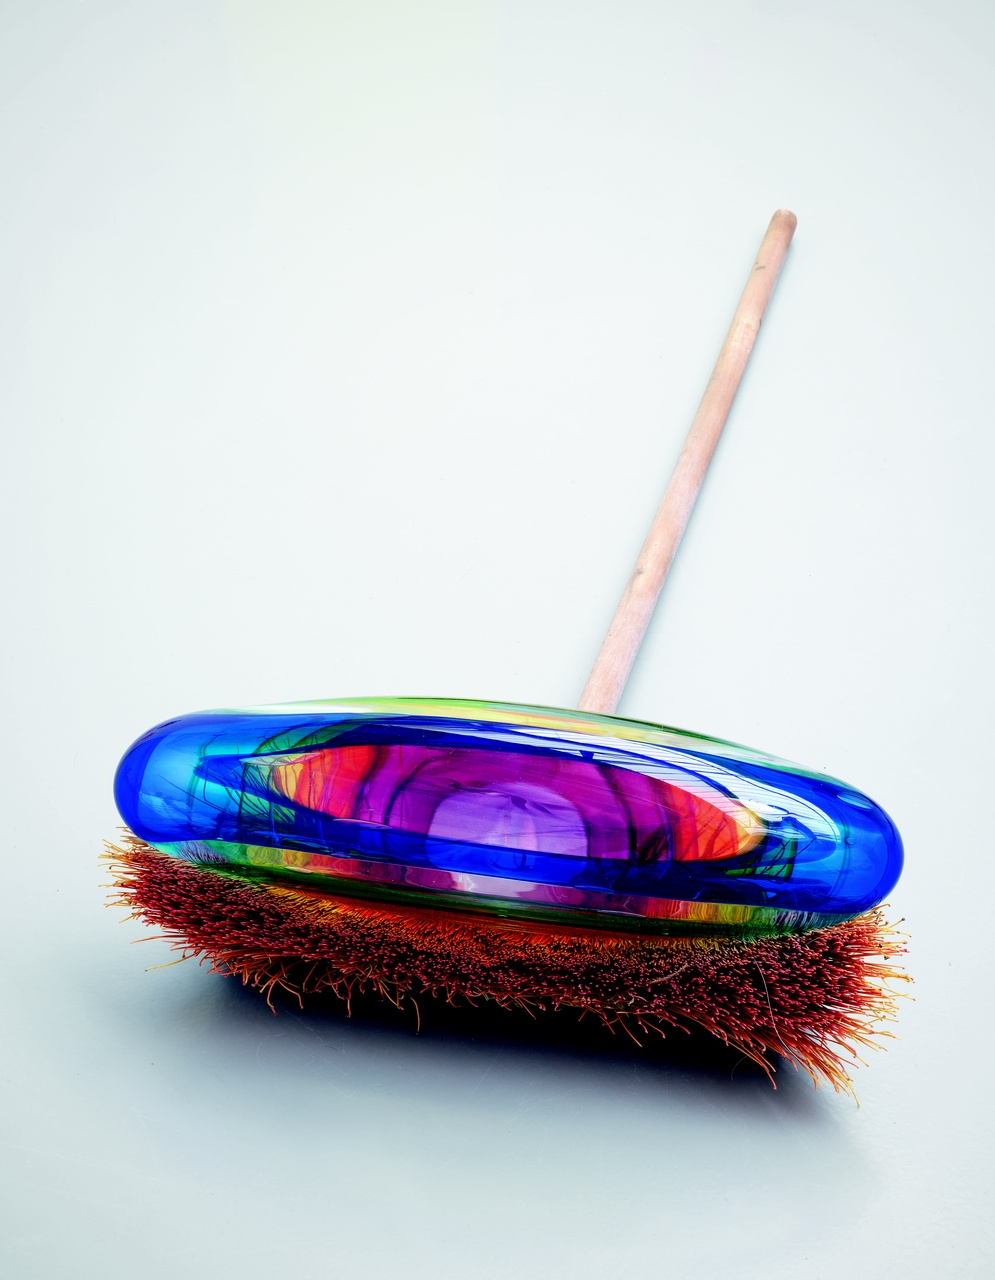 Broom Rainbow, 2014, glass & broom, 25 x 51 x 140 cm, Pačinek Studio, Lindava, Czech Republic.jpg